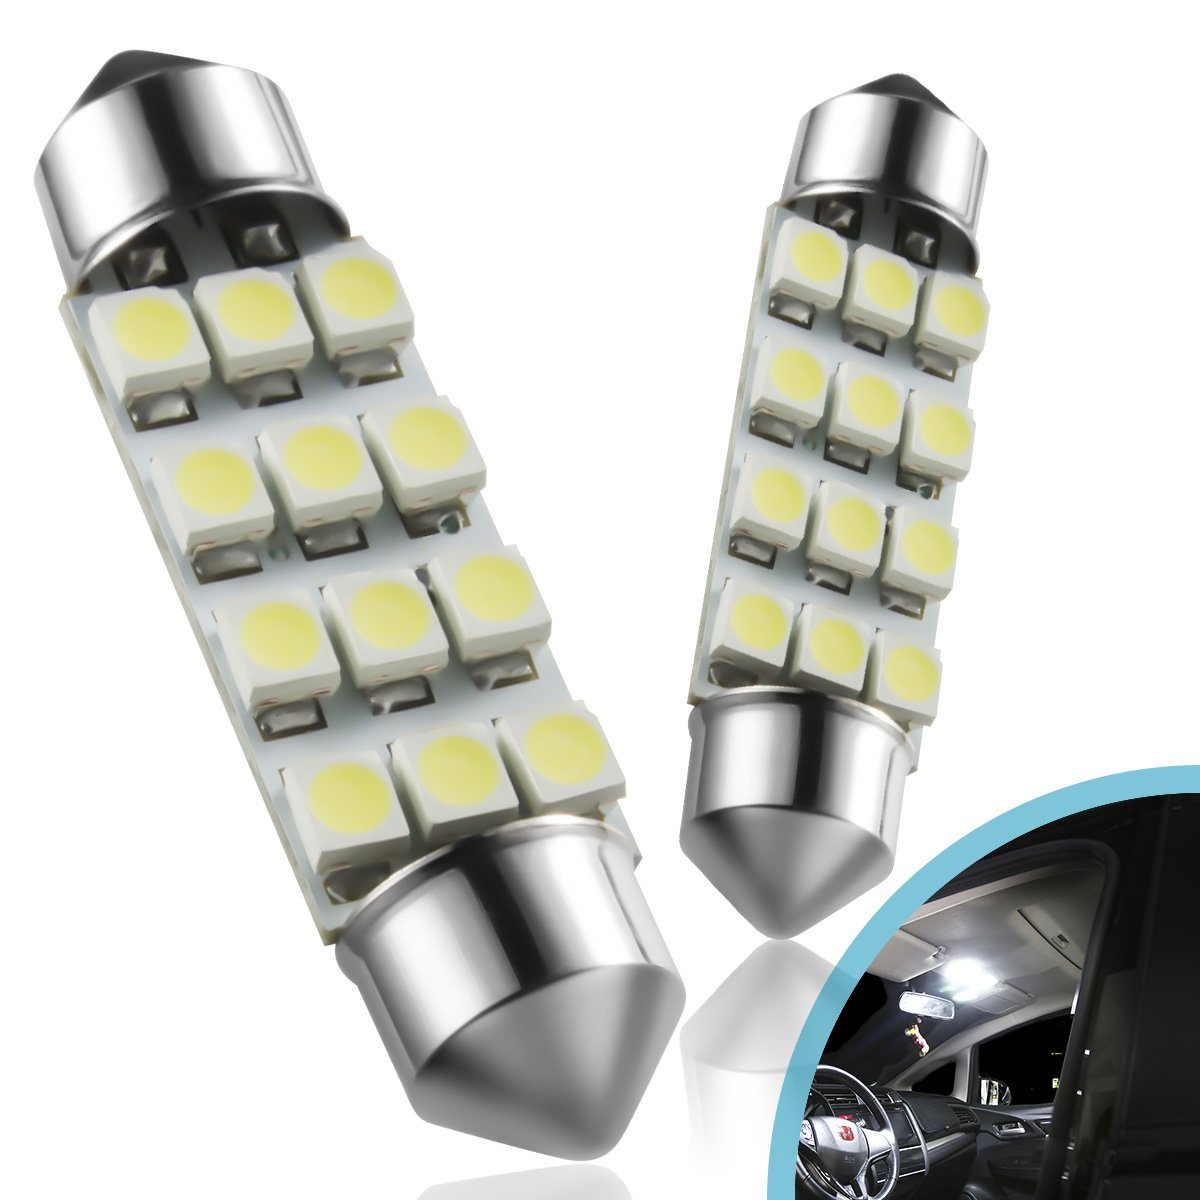 Marsauto 194 168 T10 2825 LED License Plate Lights Bulbs No-Polarity, Replacement Bulbs Car Dome Map Door Courtesy License Plate Lights White 12V 4 PCS 4336326681